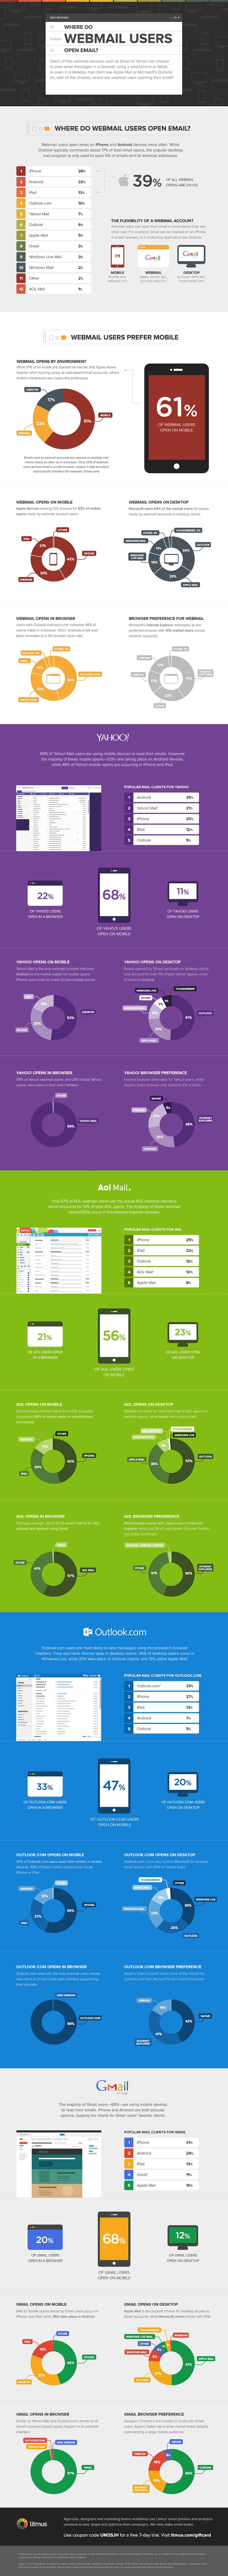 Webmail users email